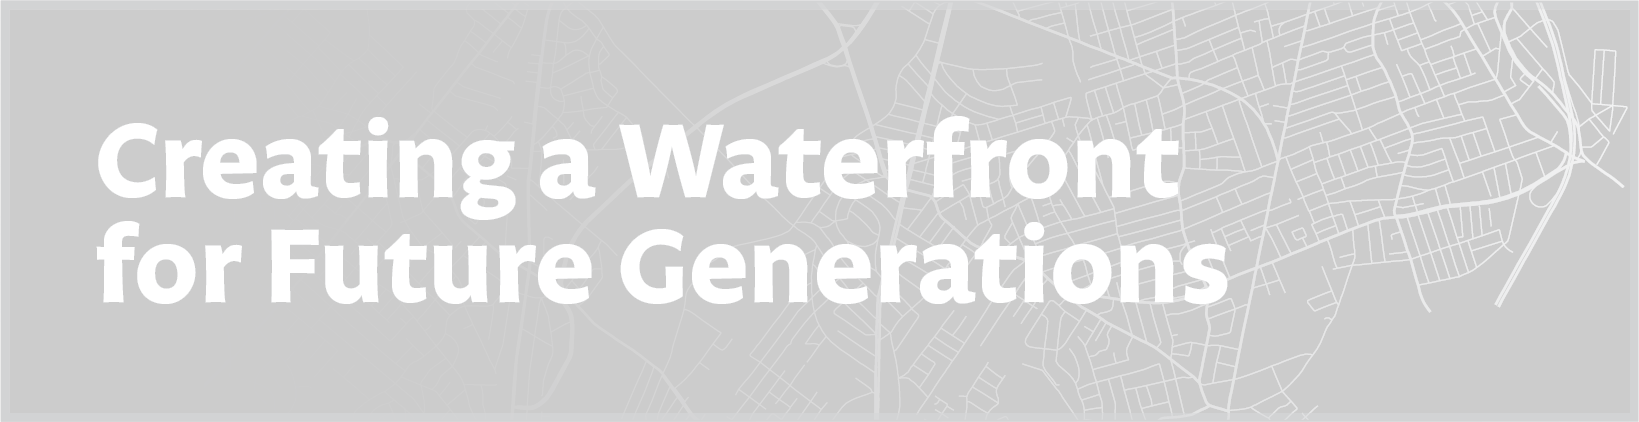 Creating a Waterfront for Future Generations